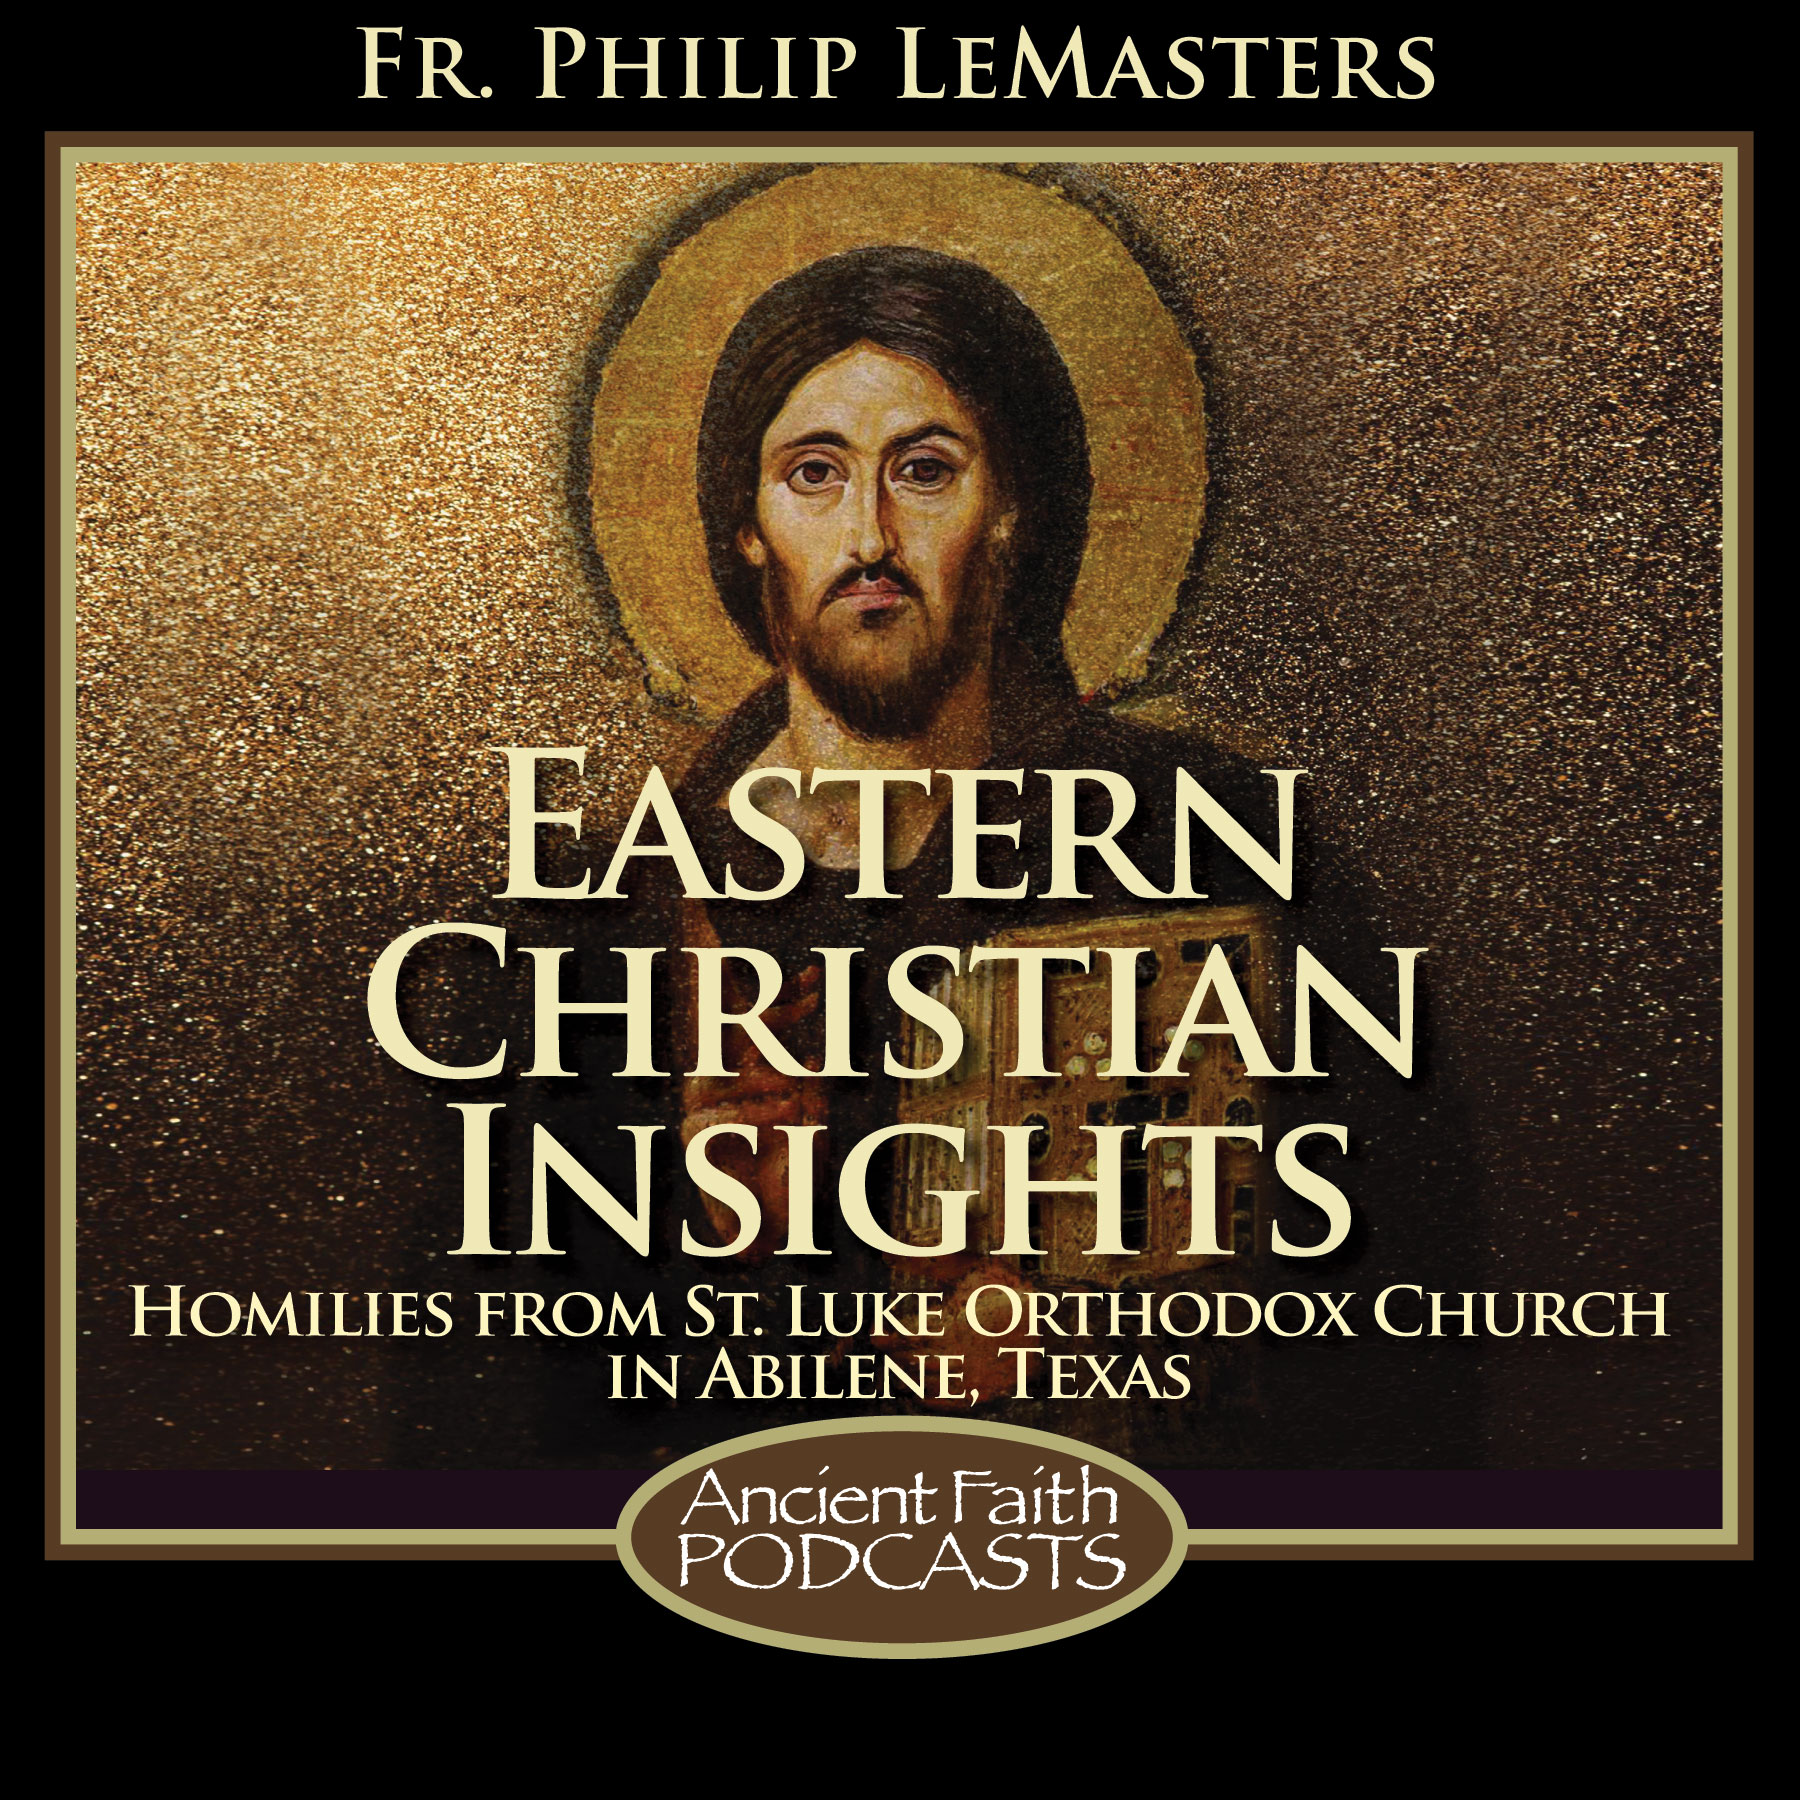 Eastern Christian Insights